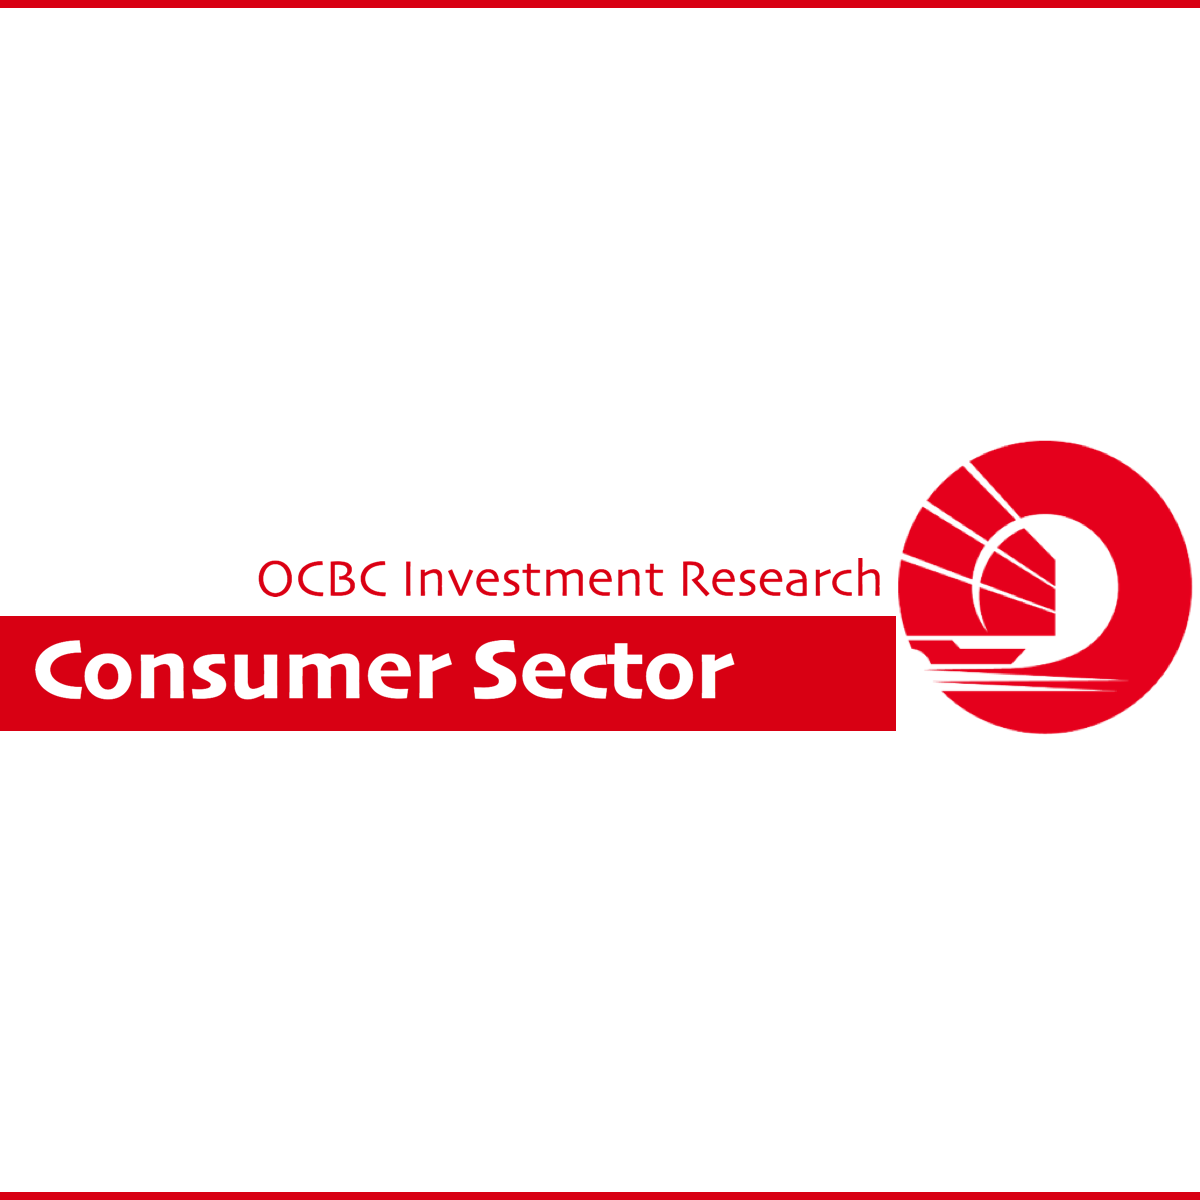 Consumer sector - OCBC Investment 2017-02-01: Still an attractive space